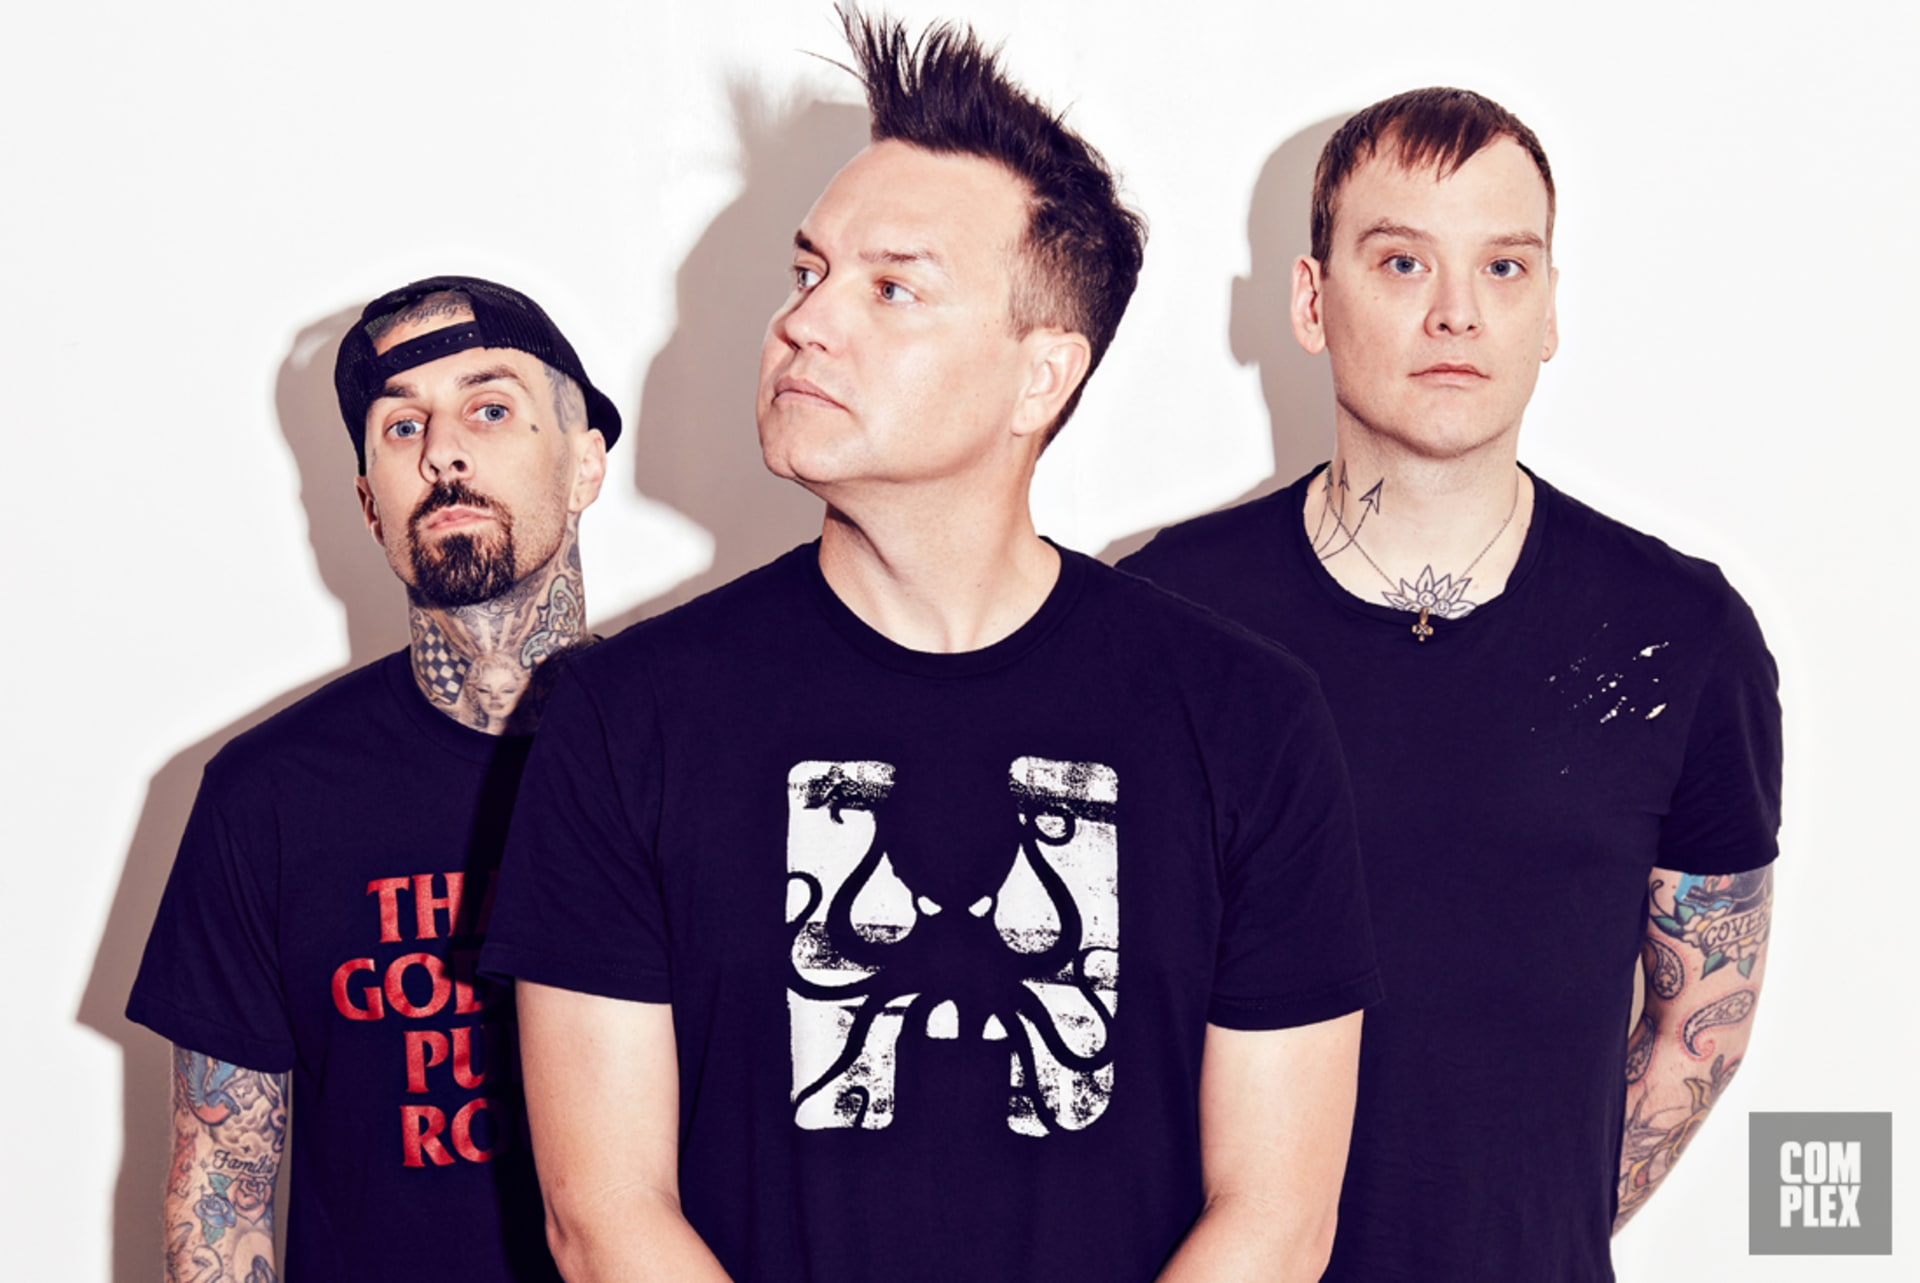 In 2016, it's awfully hard to get Blink-182 to undress.